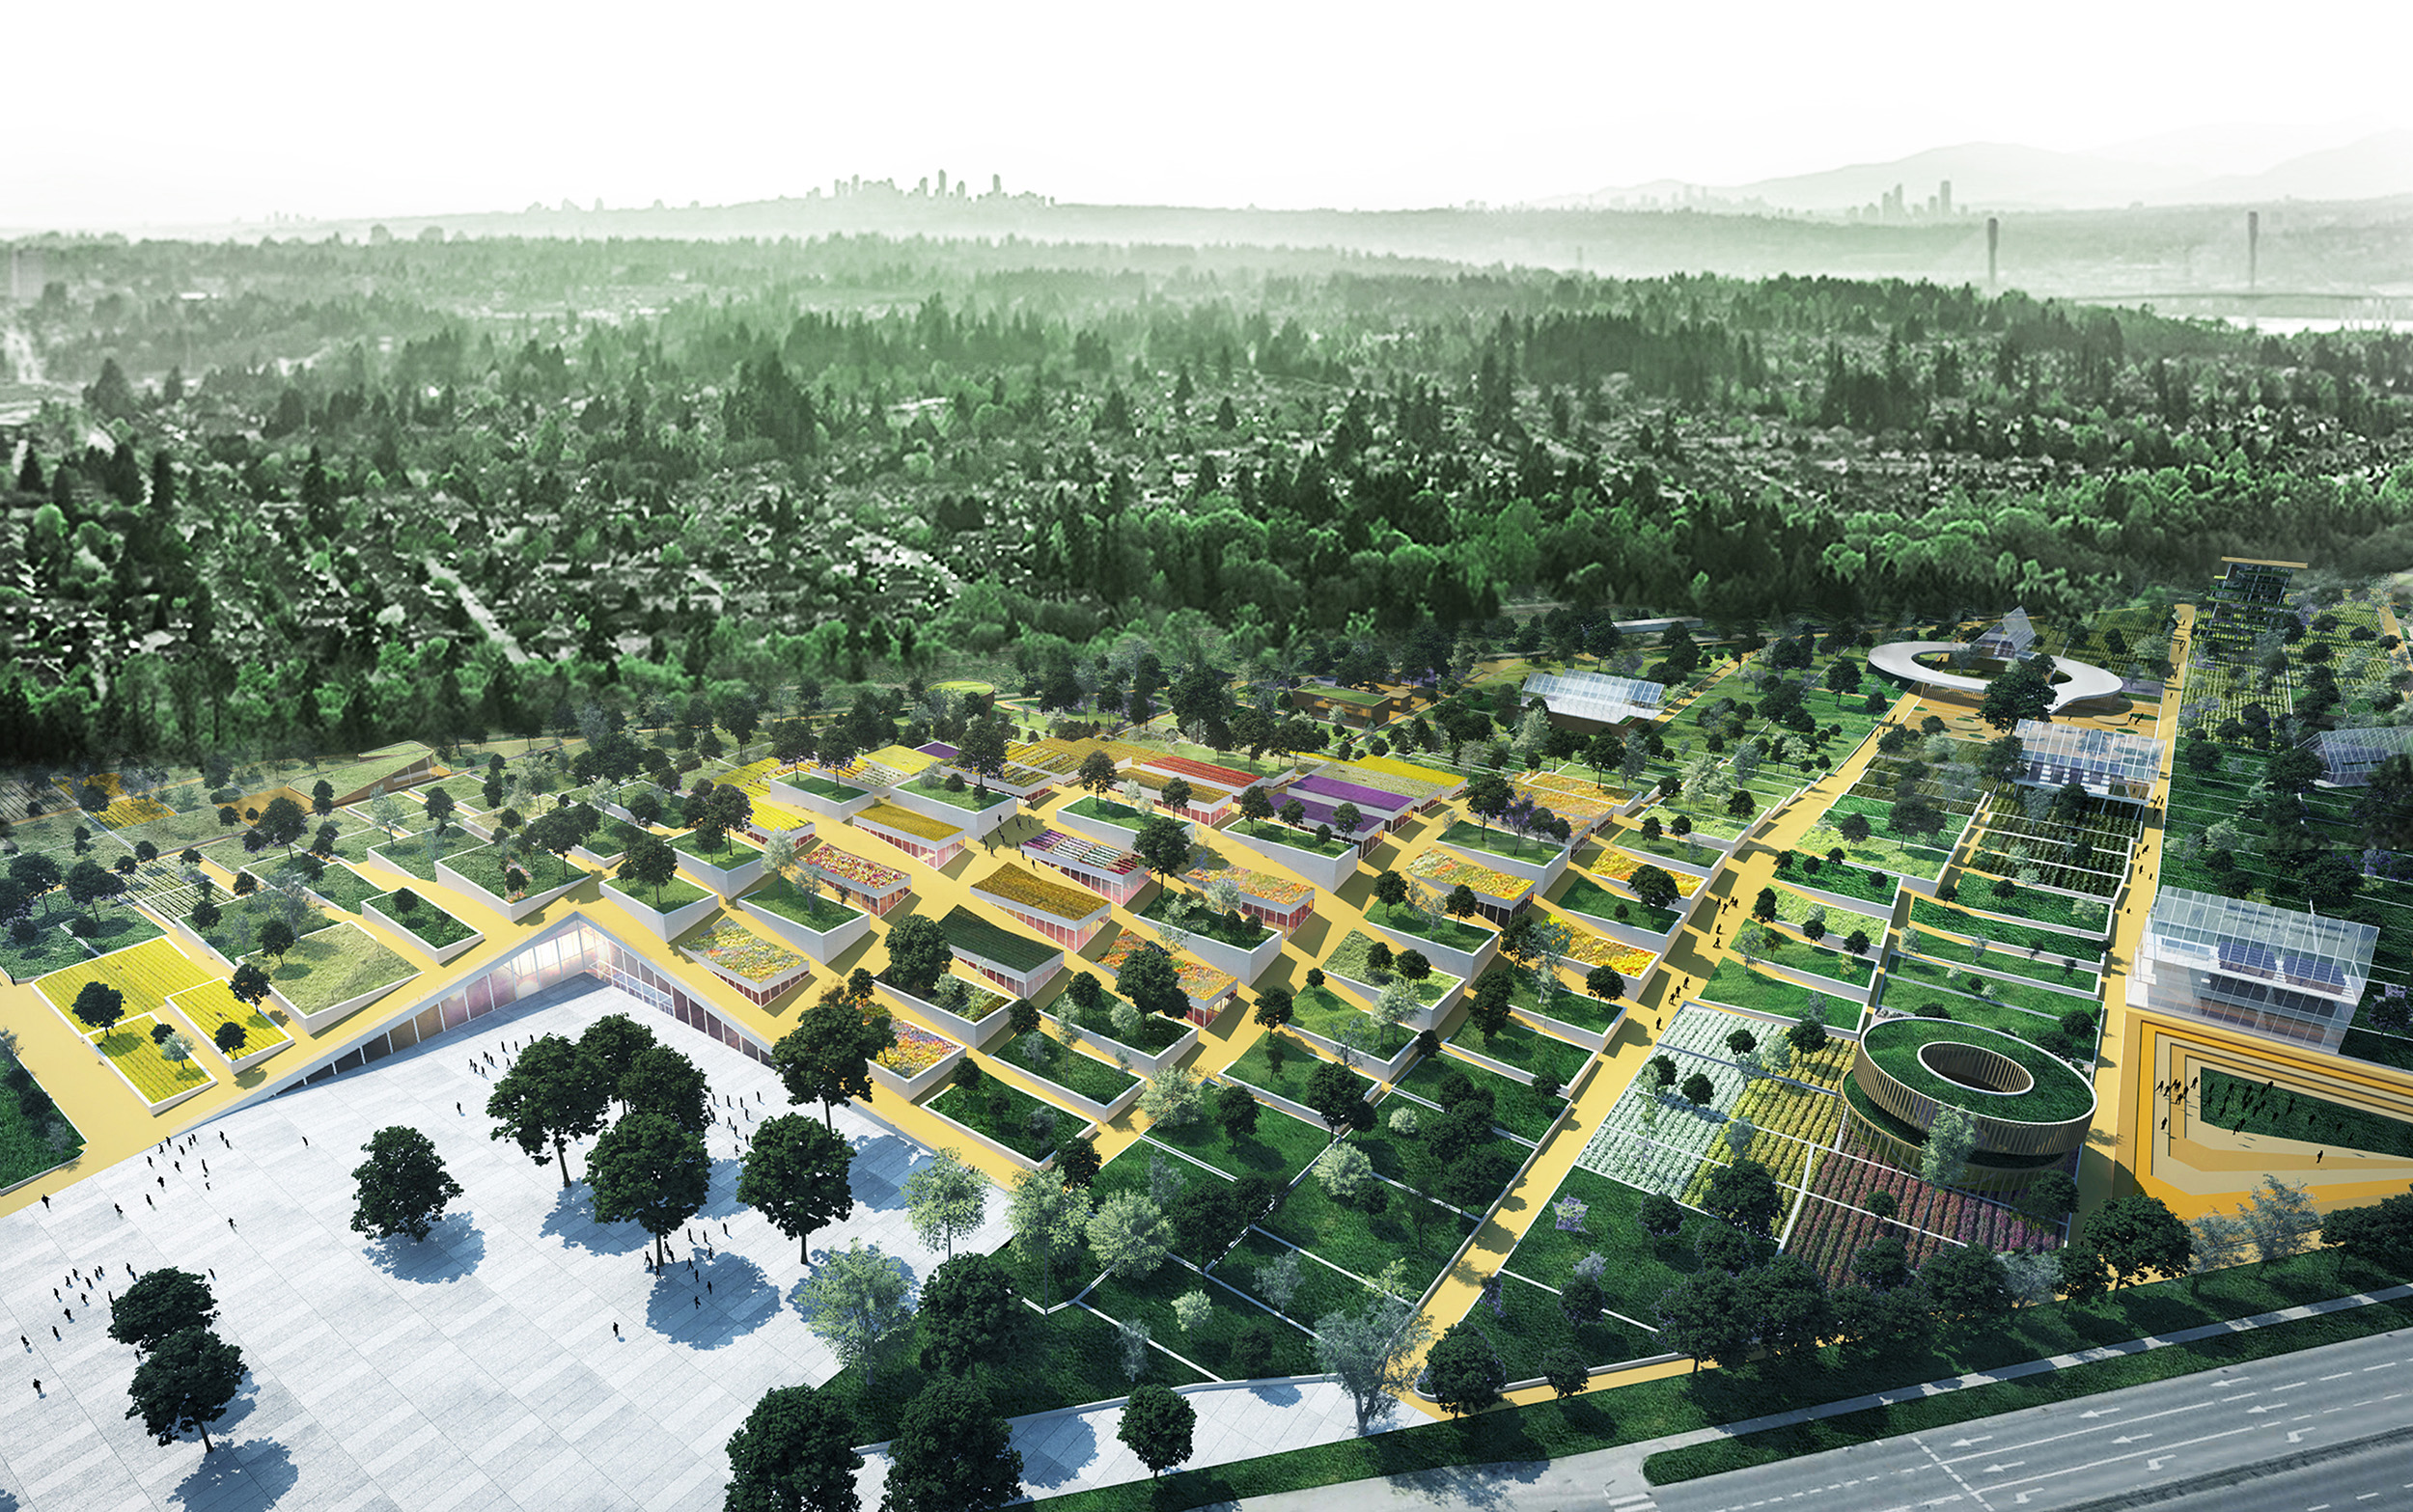 Gardens-of-the-Future-by-MJZ-1-2